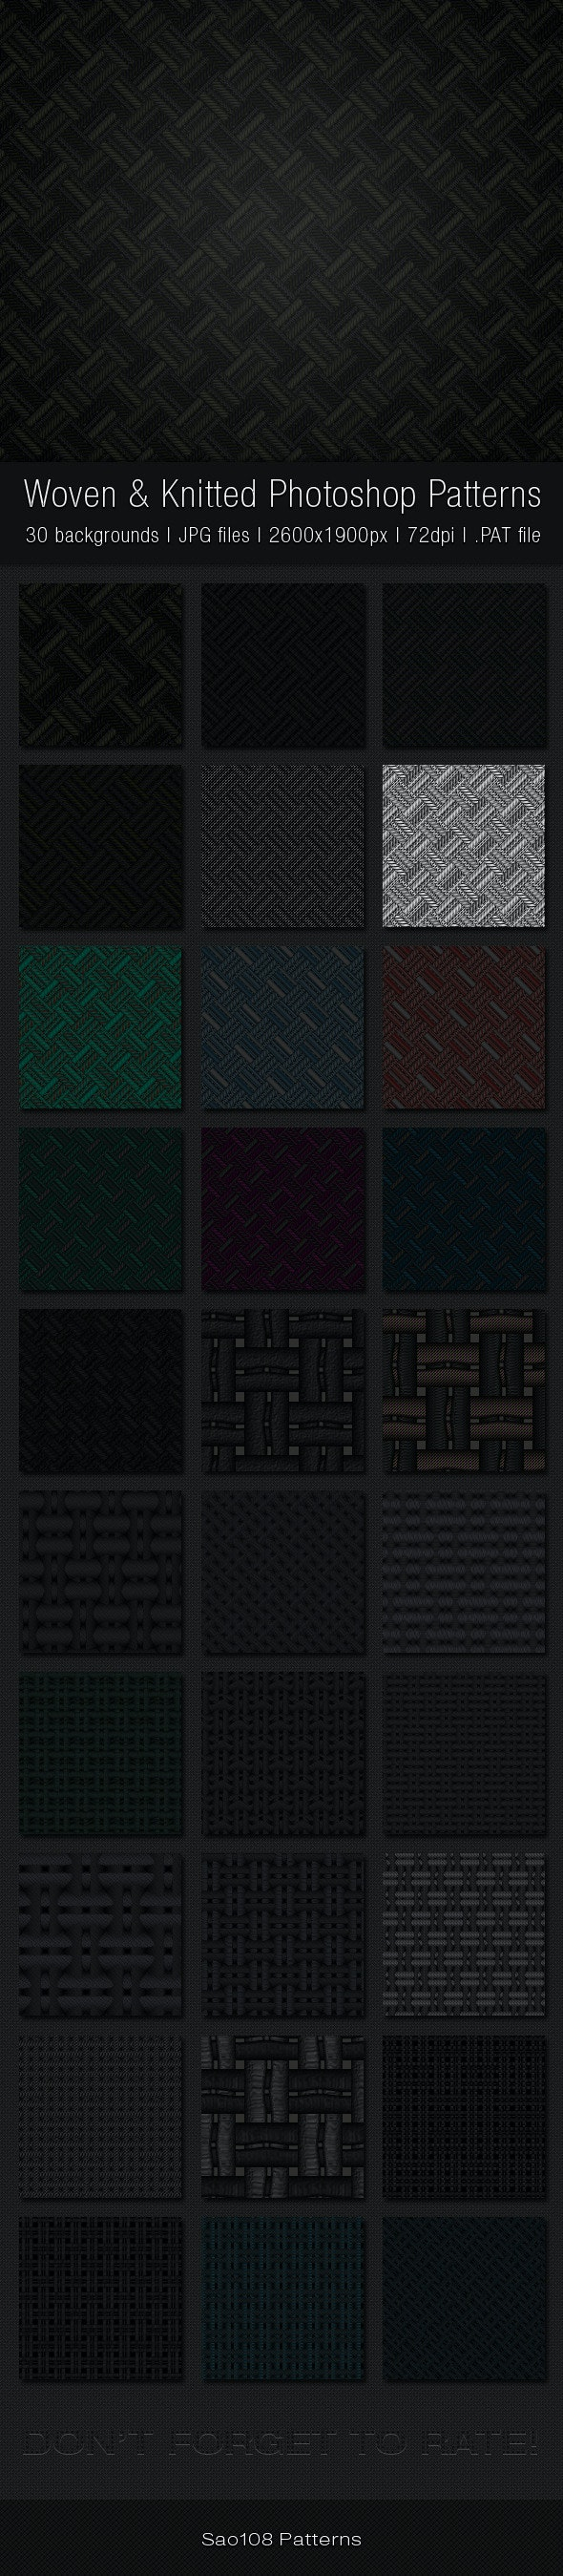 Woven and Knitted Photoshop Patterns - Abstract Textures / Fills / Patterns